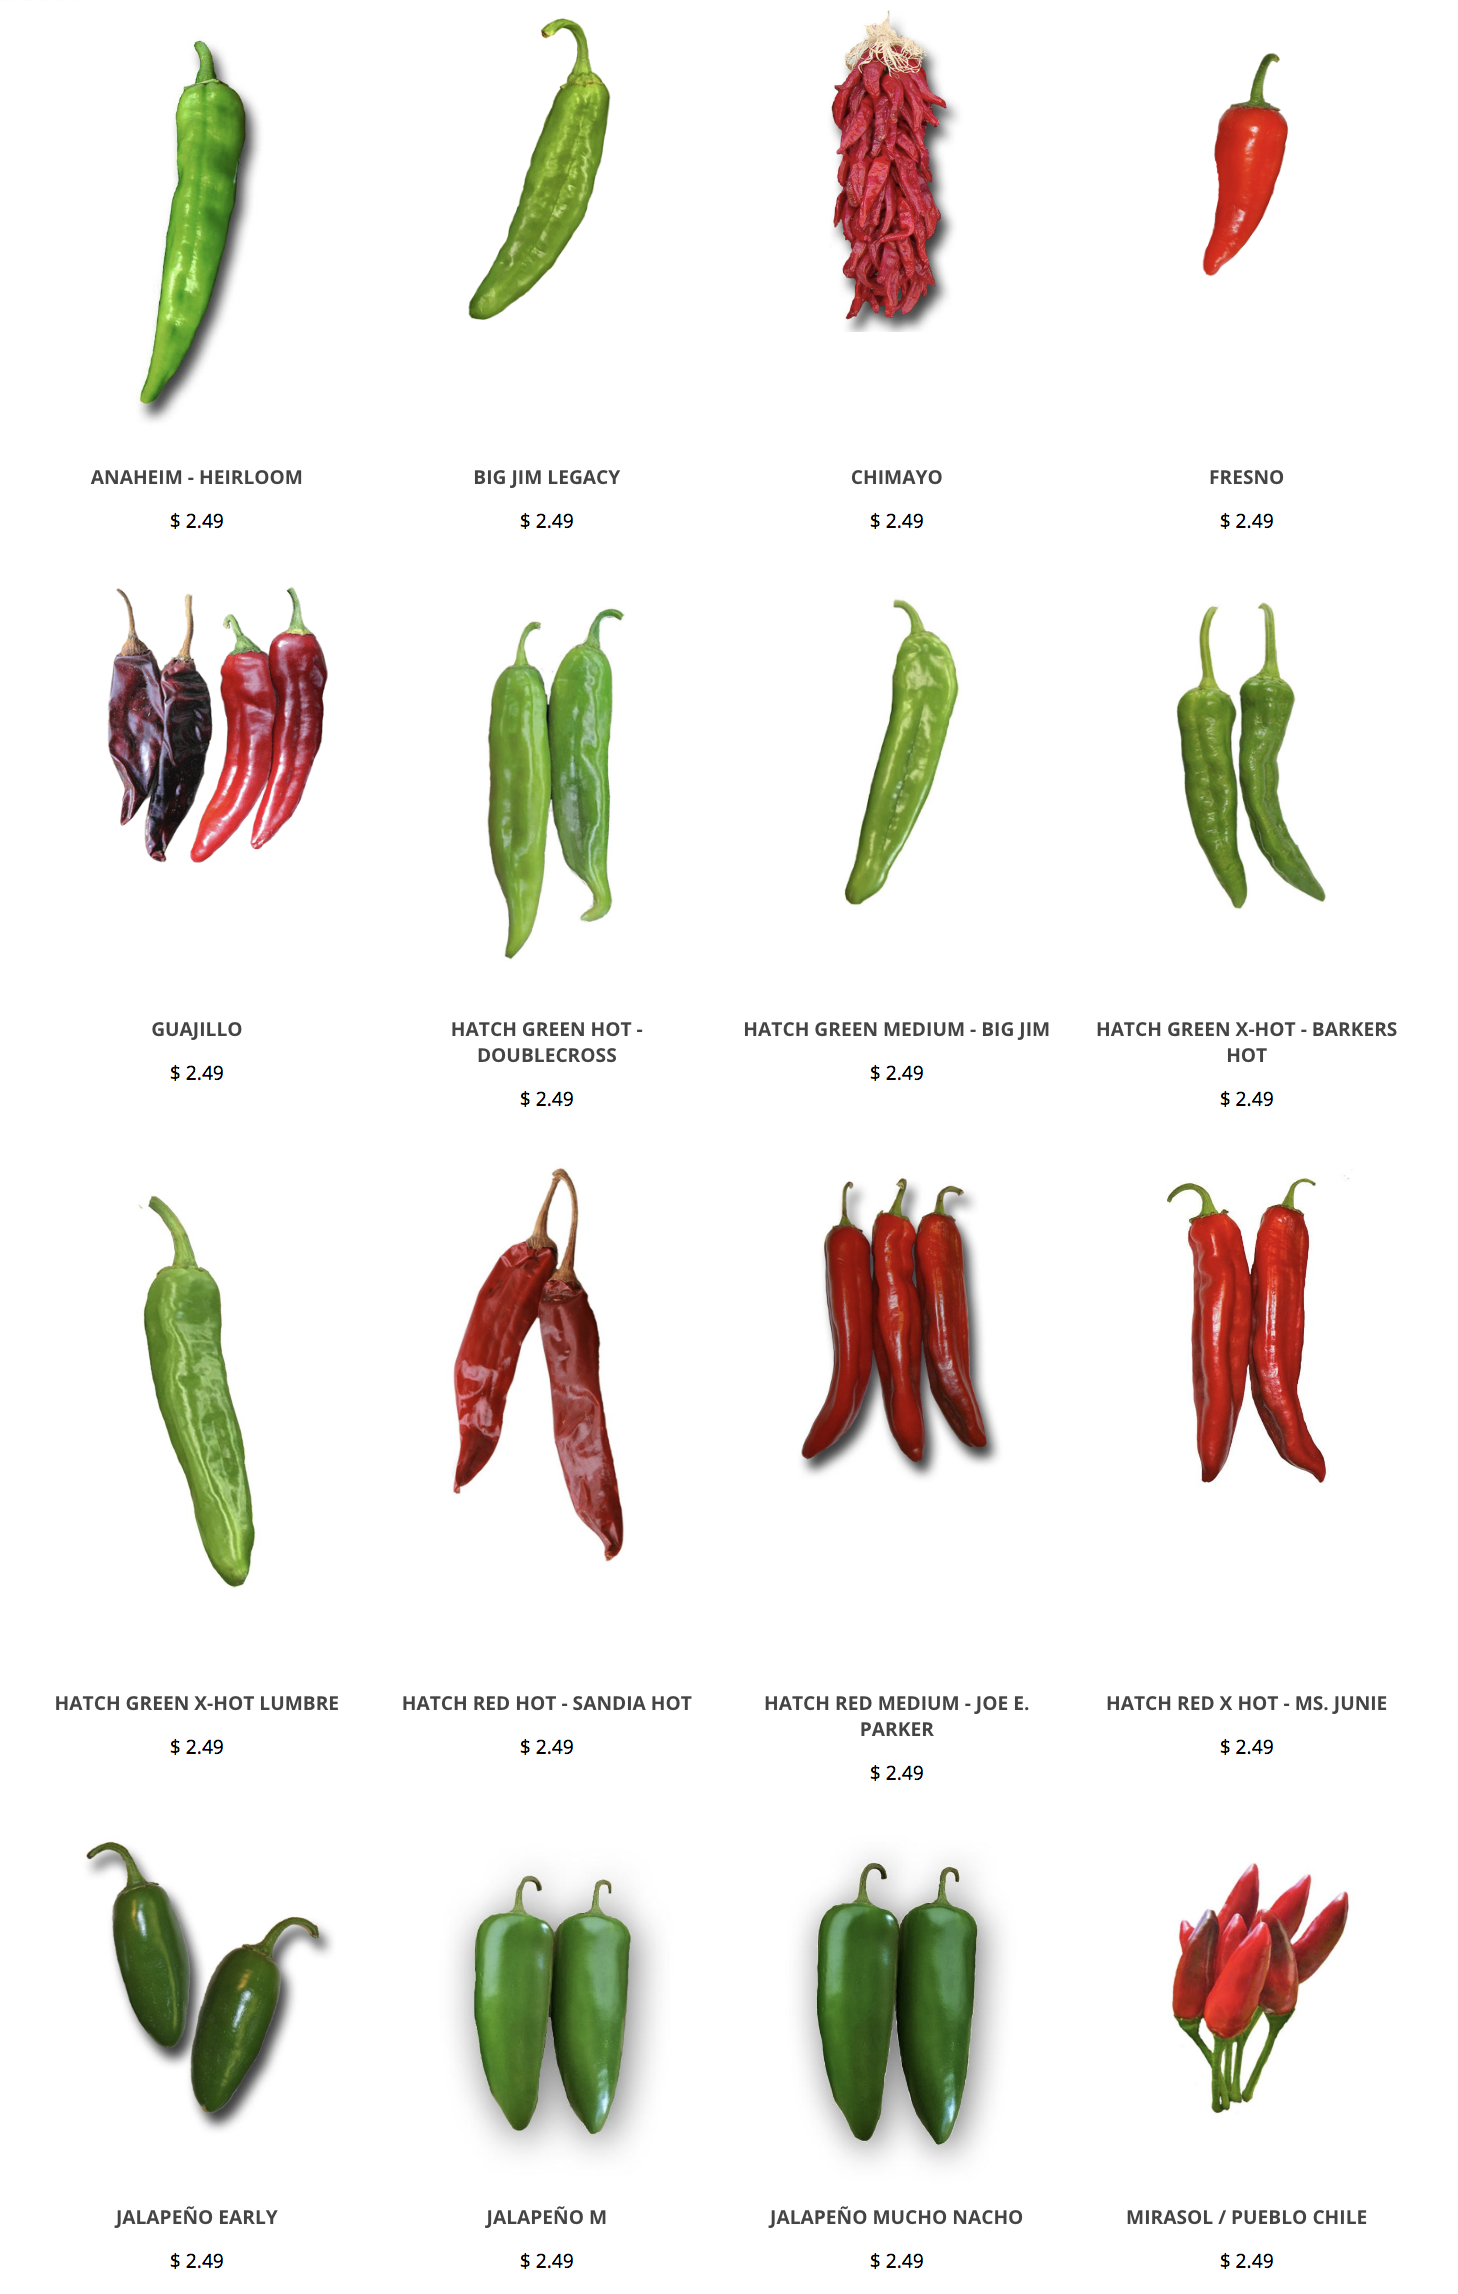 Hatch Chile Seeds Gren Chile Seeds Red Chile Seeds Https Www